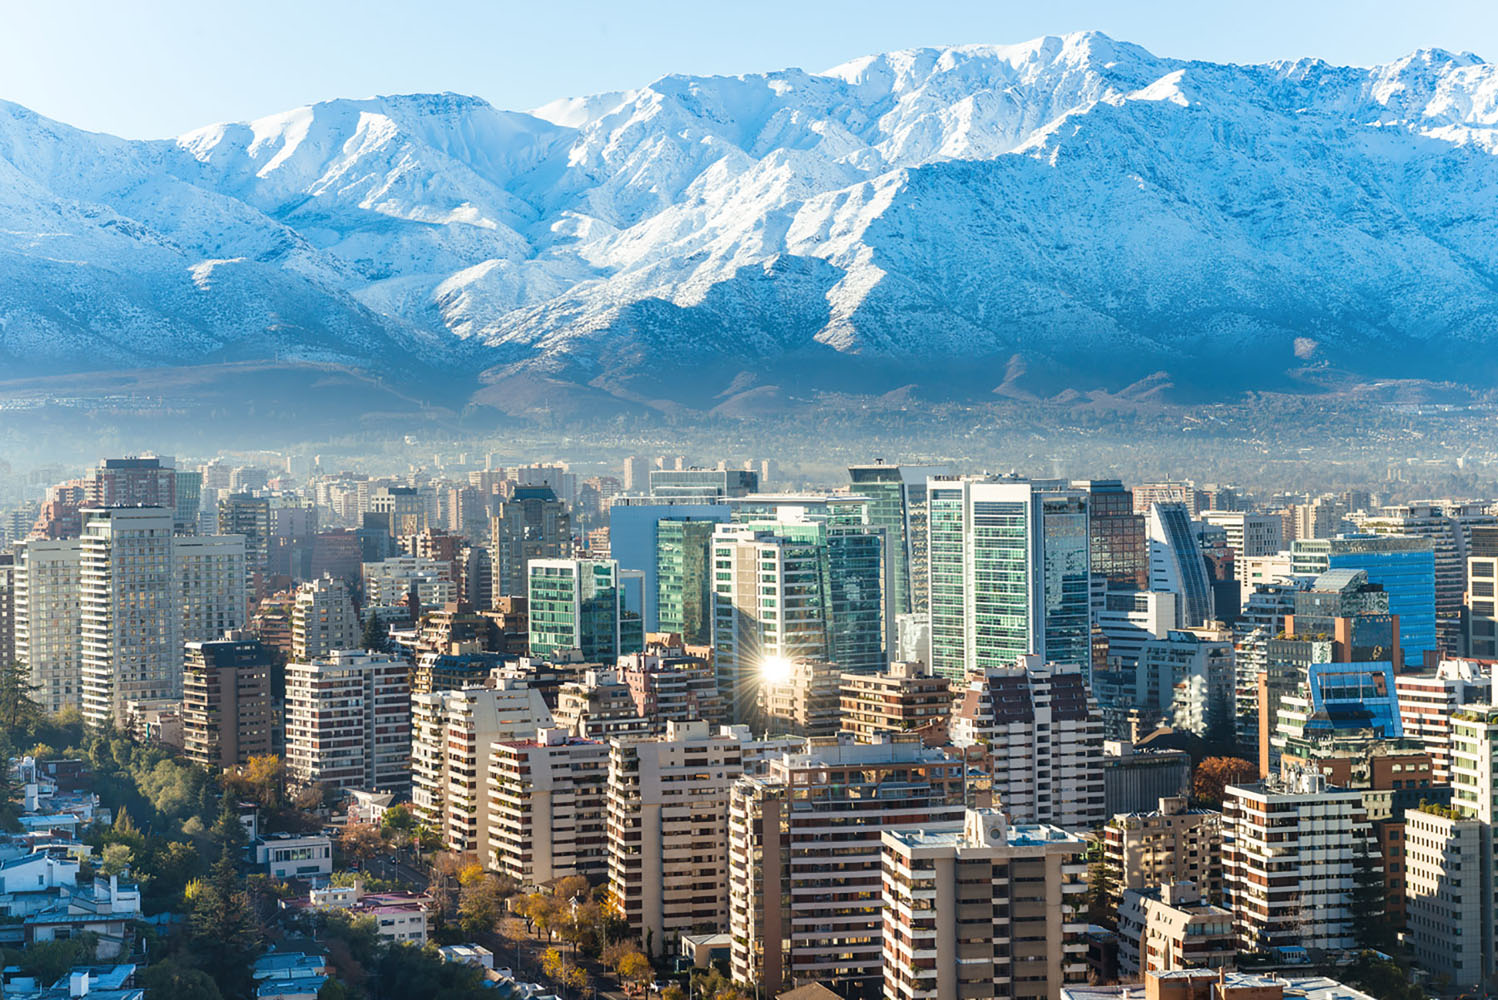 A skyline and mountain-range view of Santiago, Chile.